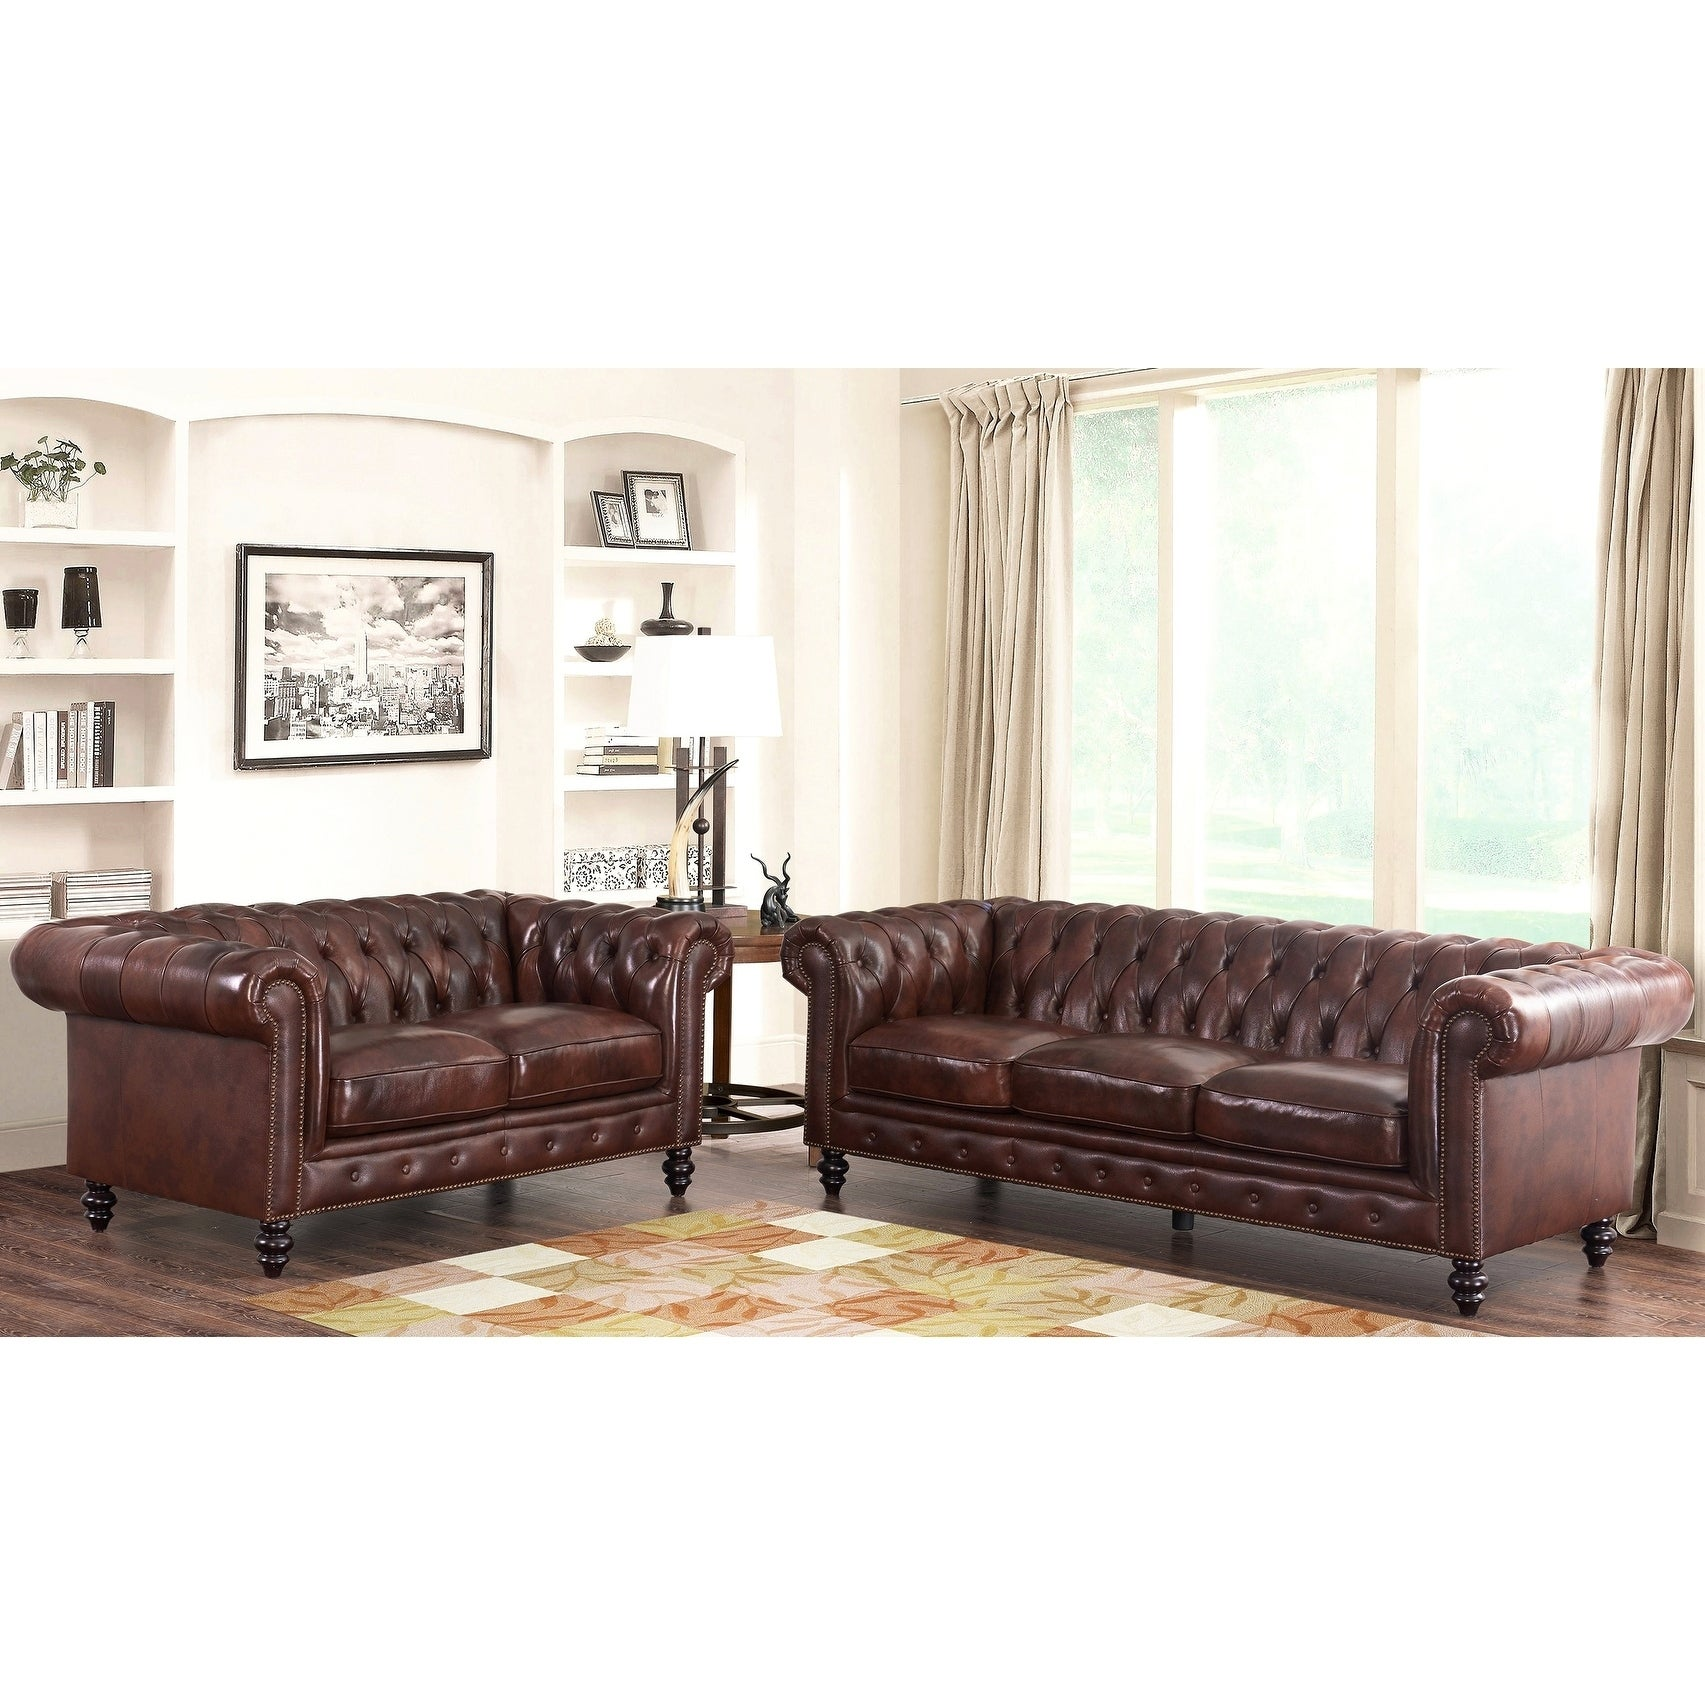 Shop Abbyson Grand Chesterfield Brown Top Grain Leather 2 Piece